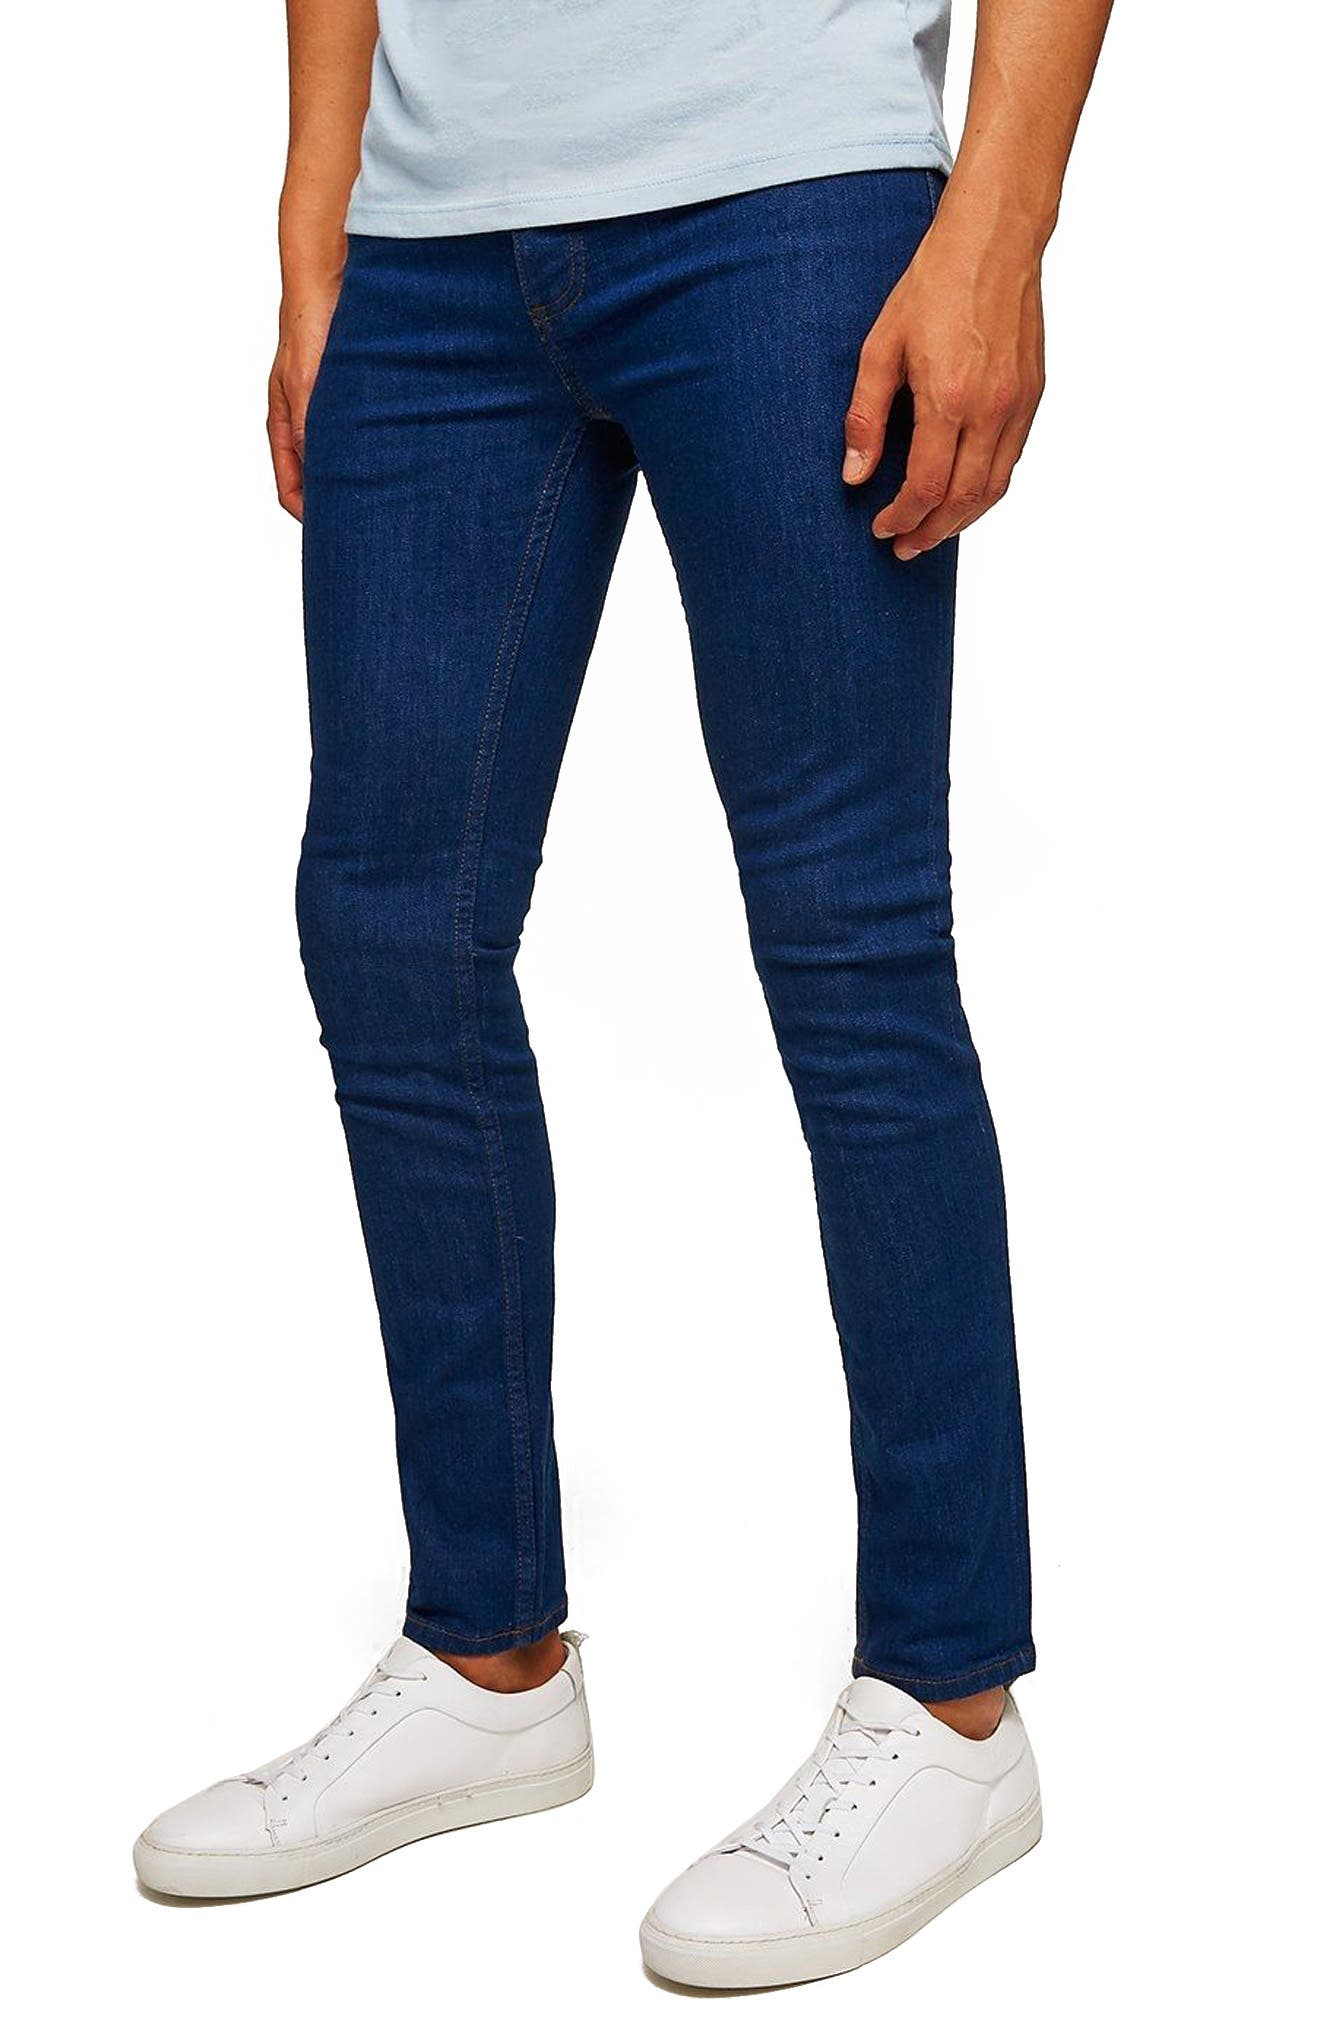 Stretch Skinny Fit Jeans,                         Main,                         color, 400